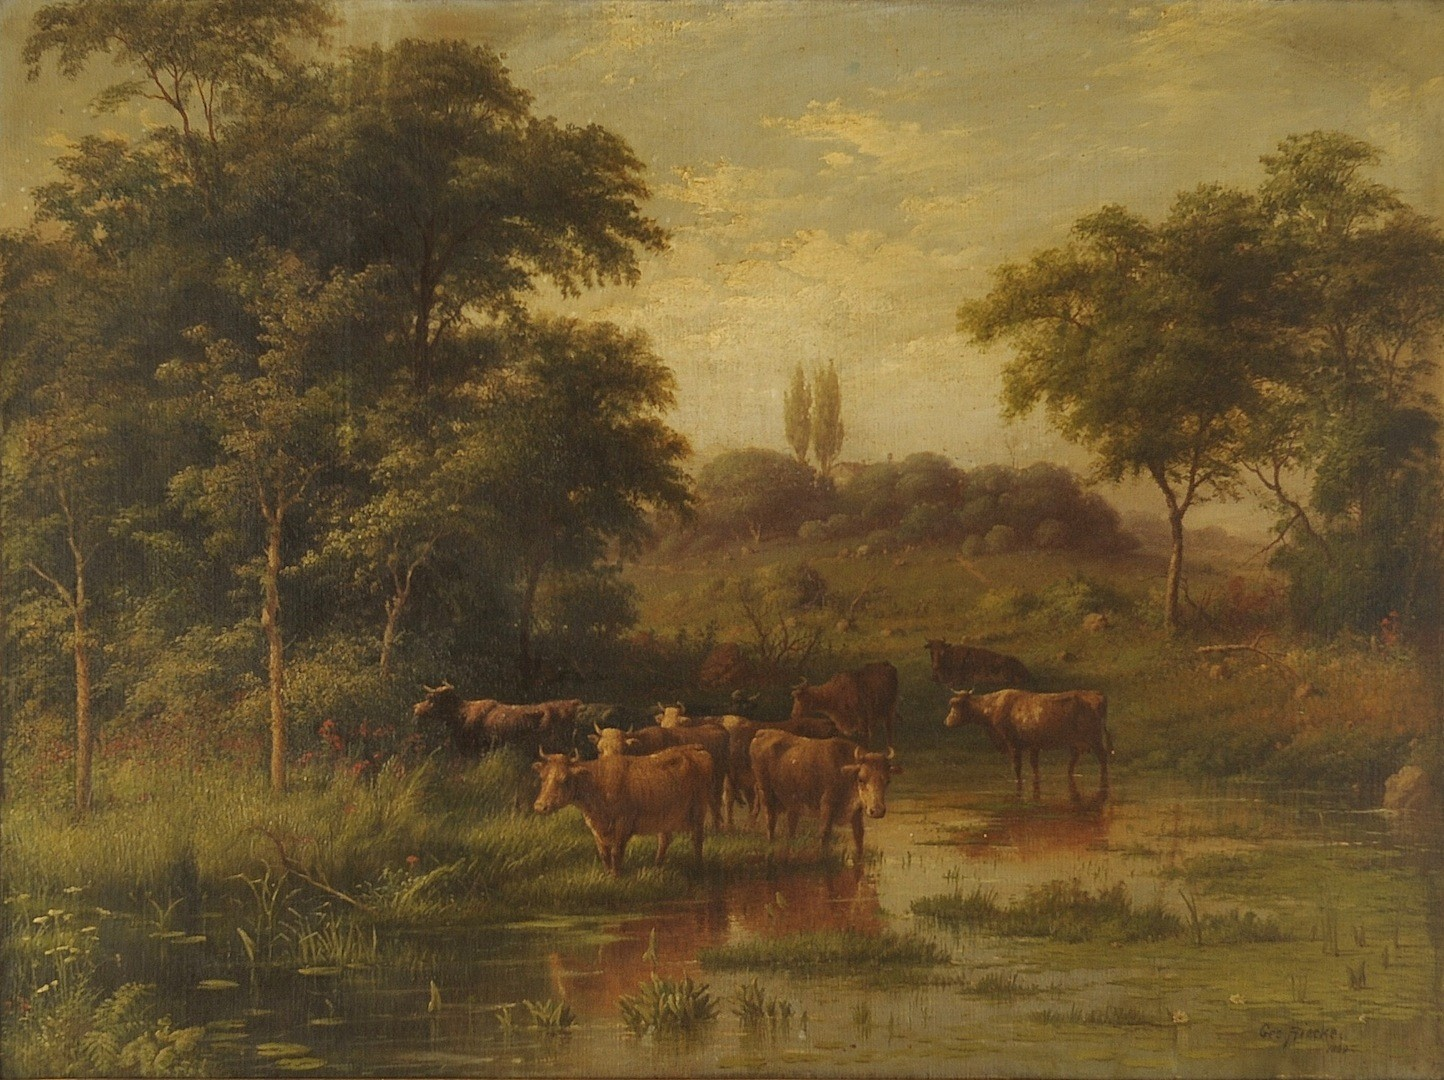 Lot __ Inv. #4209: George Riecke oil on canvas, landscape with cows